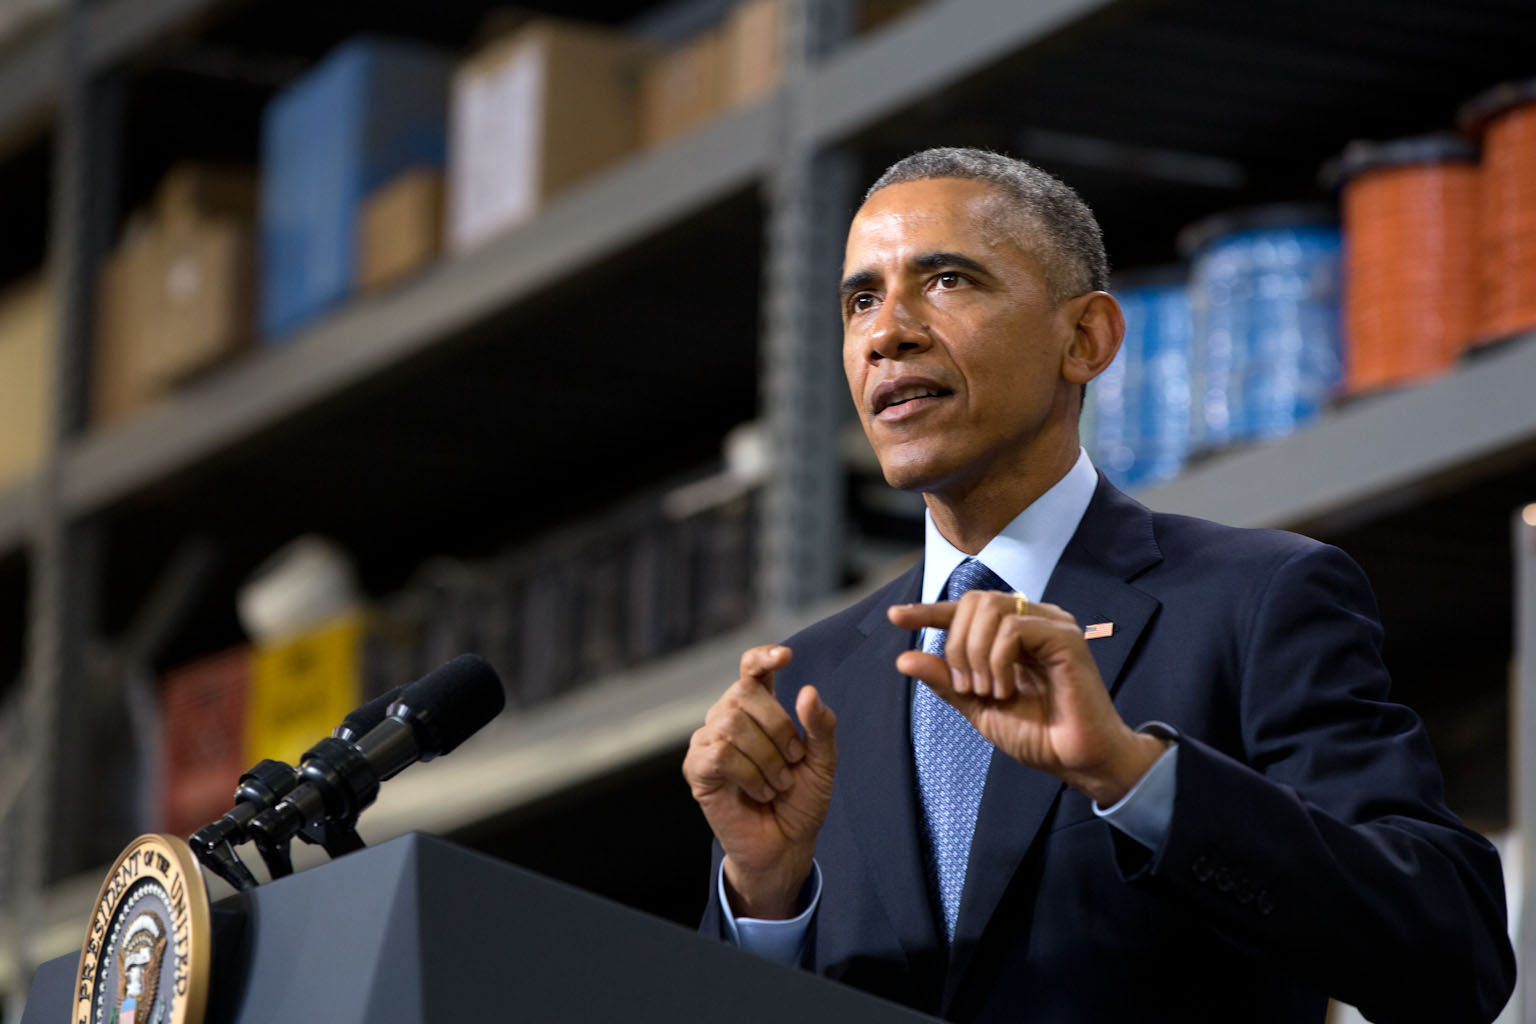 President Obama makes remarks at Cedar Falls Utilities in Cedar Falls, Iowa